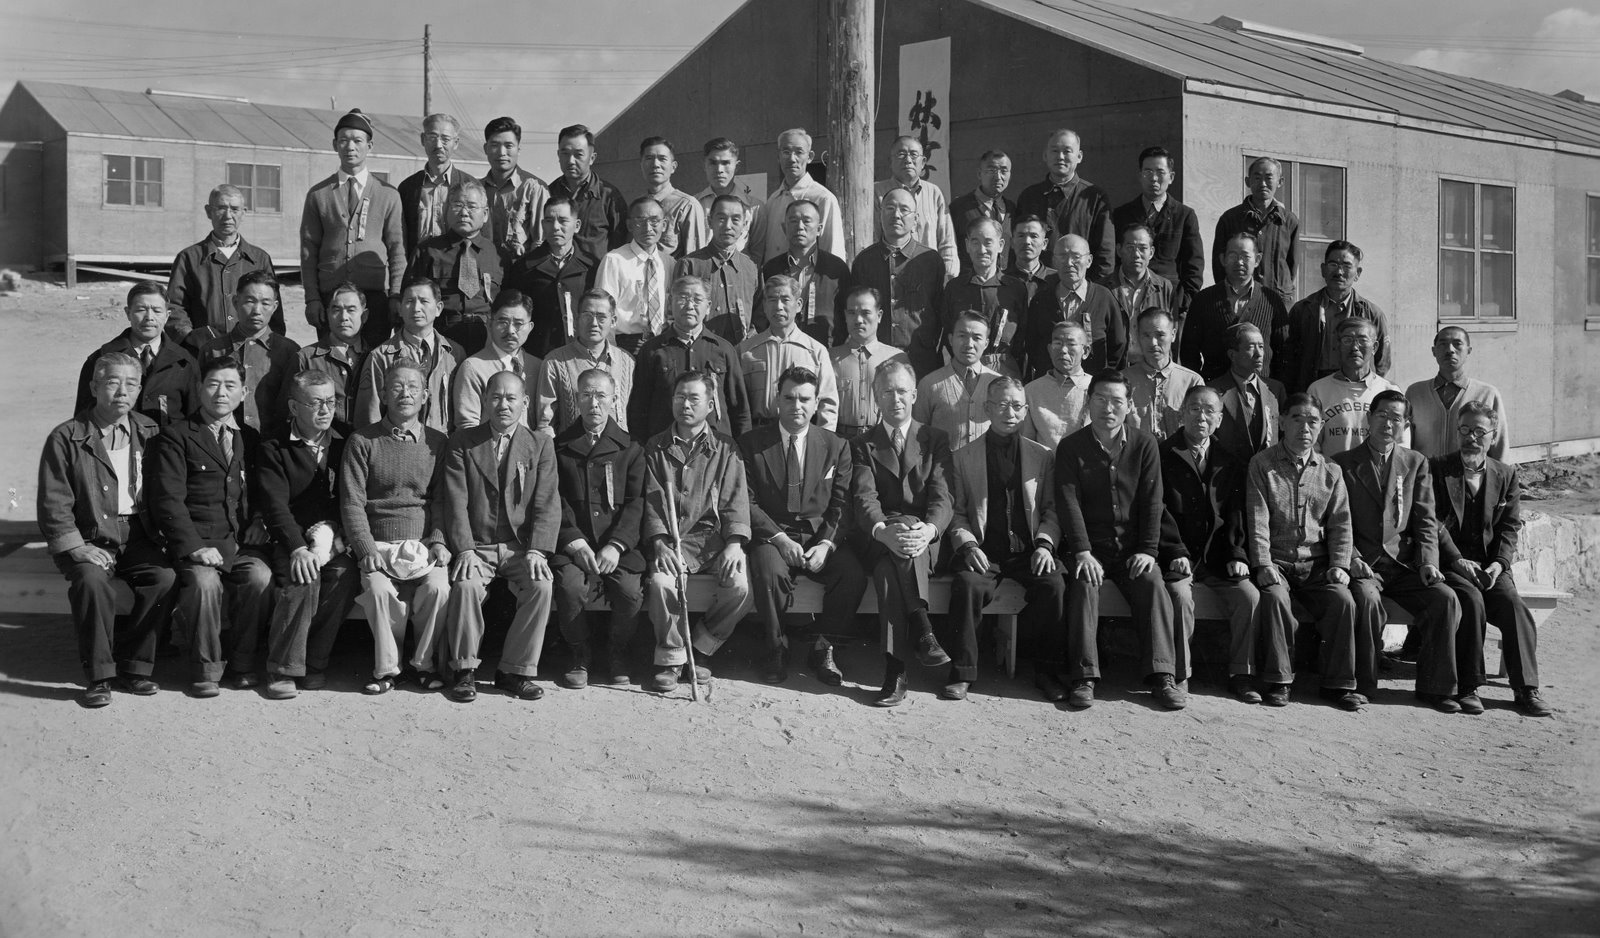 japanese internment camps during wwii essay This article is written like a personal reflection or opinion essay that  during world war ii,  at an internment camp in kaslo, bc, japanese canadian.